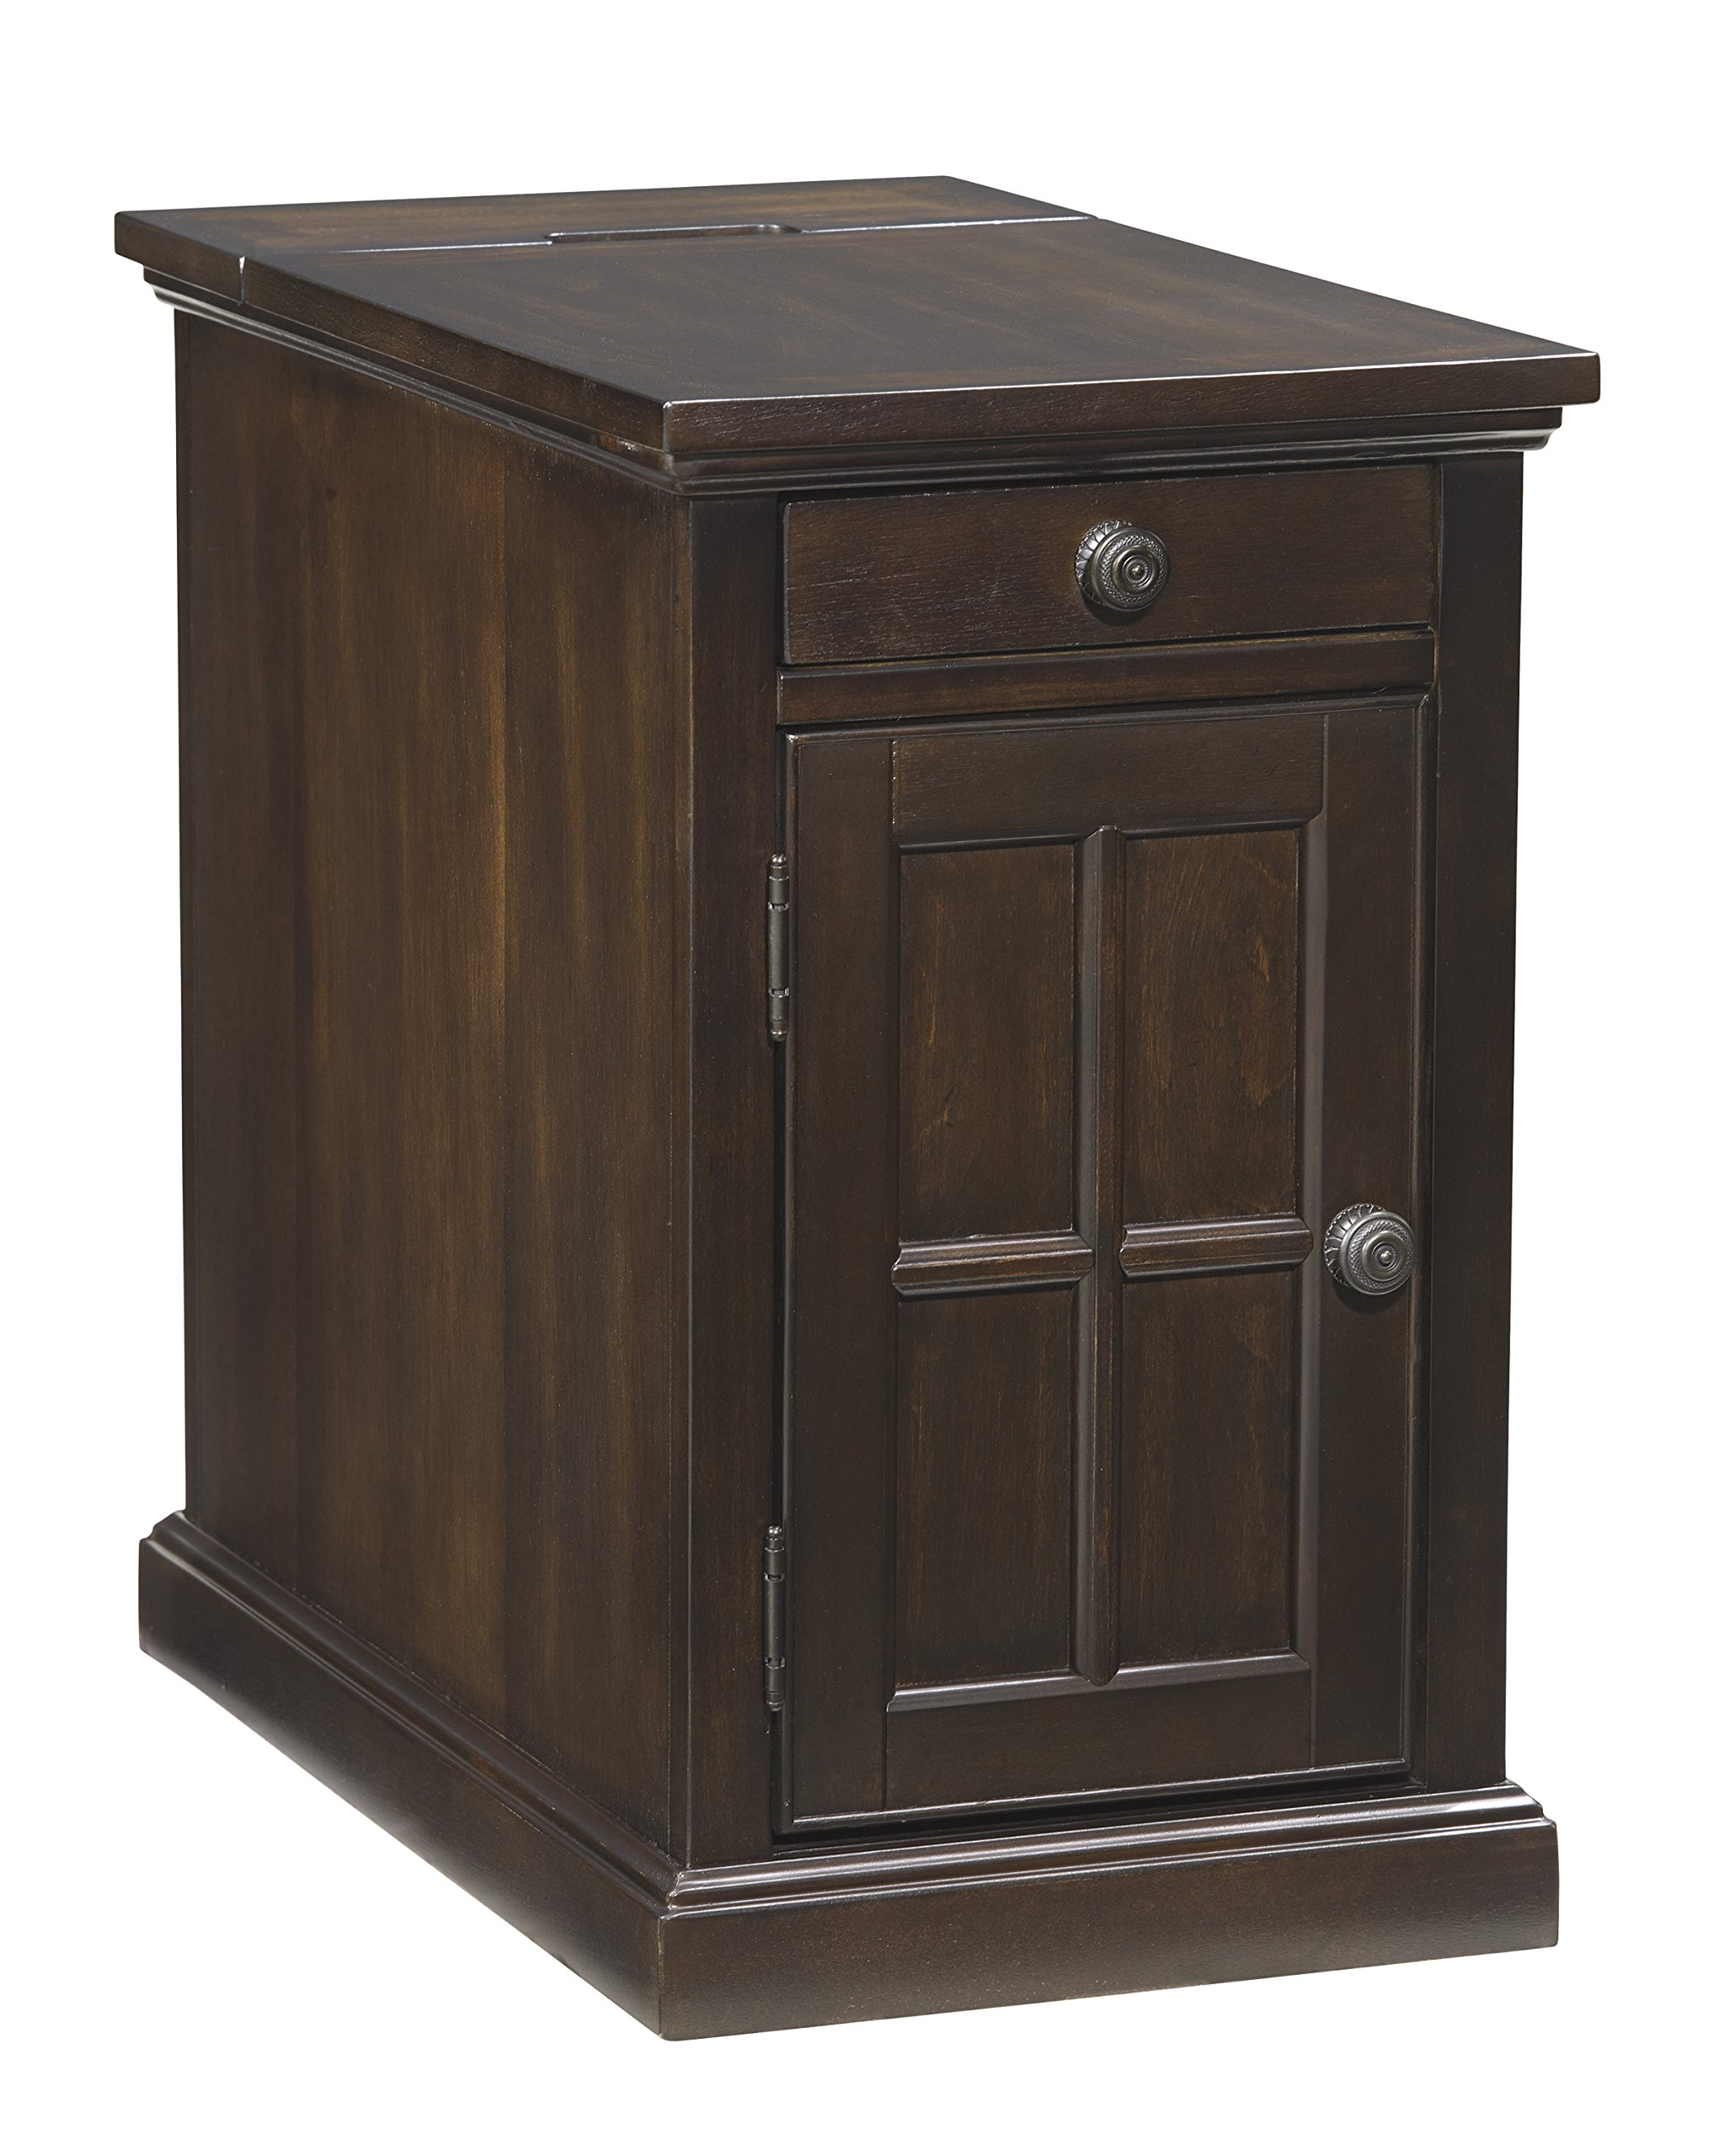 Ashley Furniture Signature Design - Laflorn Chair Side End Table - Rectangular - Dark Brown by Signature Design by Ashley (Image #1)